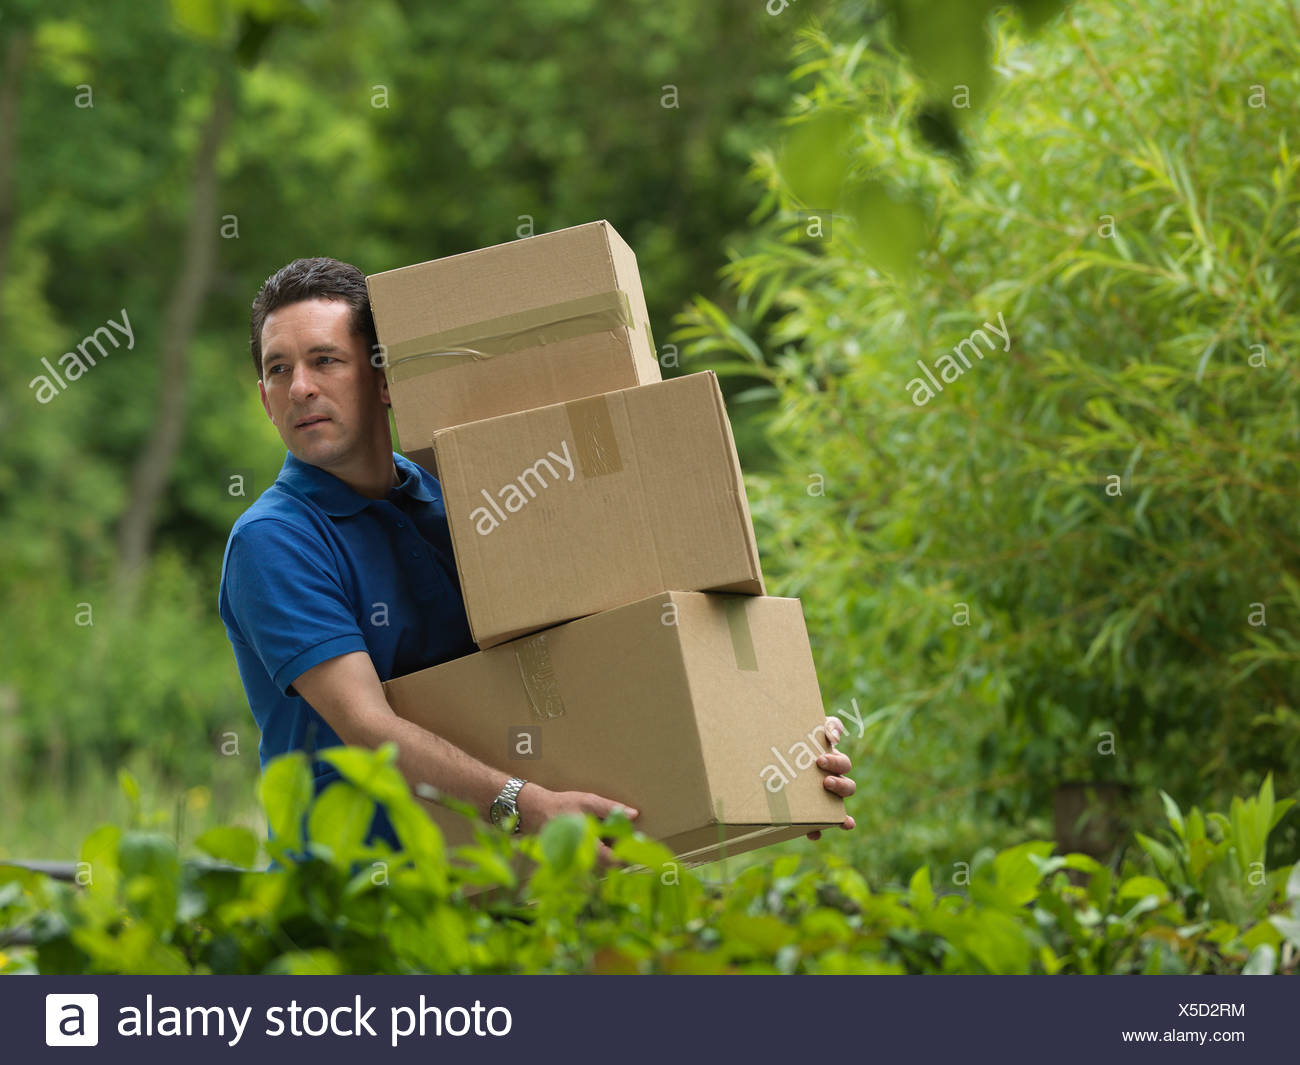 man carrying boxes - Stock Image